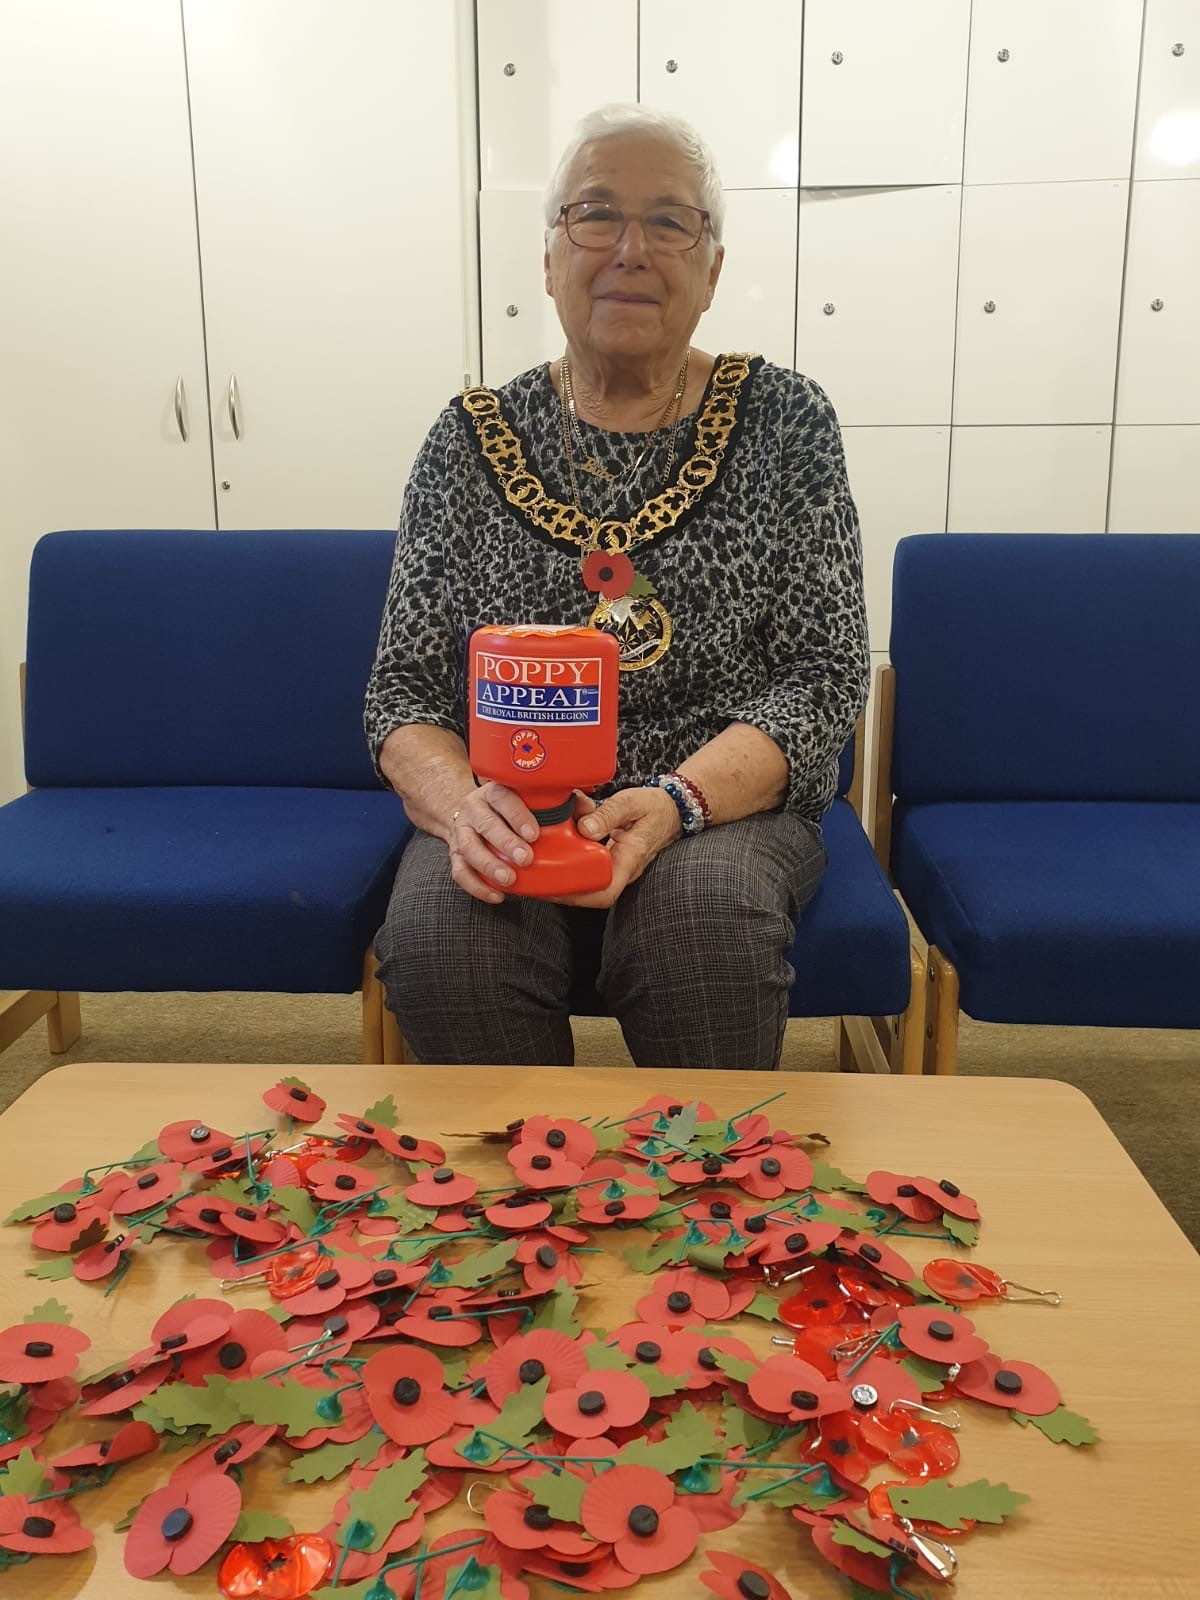 The Mayor of Haringey, Cllr Sheila Peacock, is calling on residents across the borough to support the Royal British Legion's Poppy Appeal